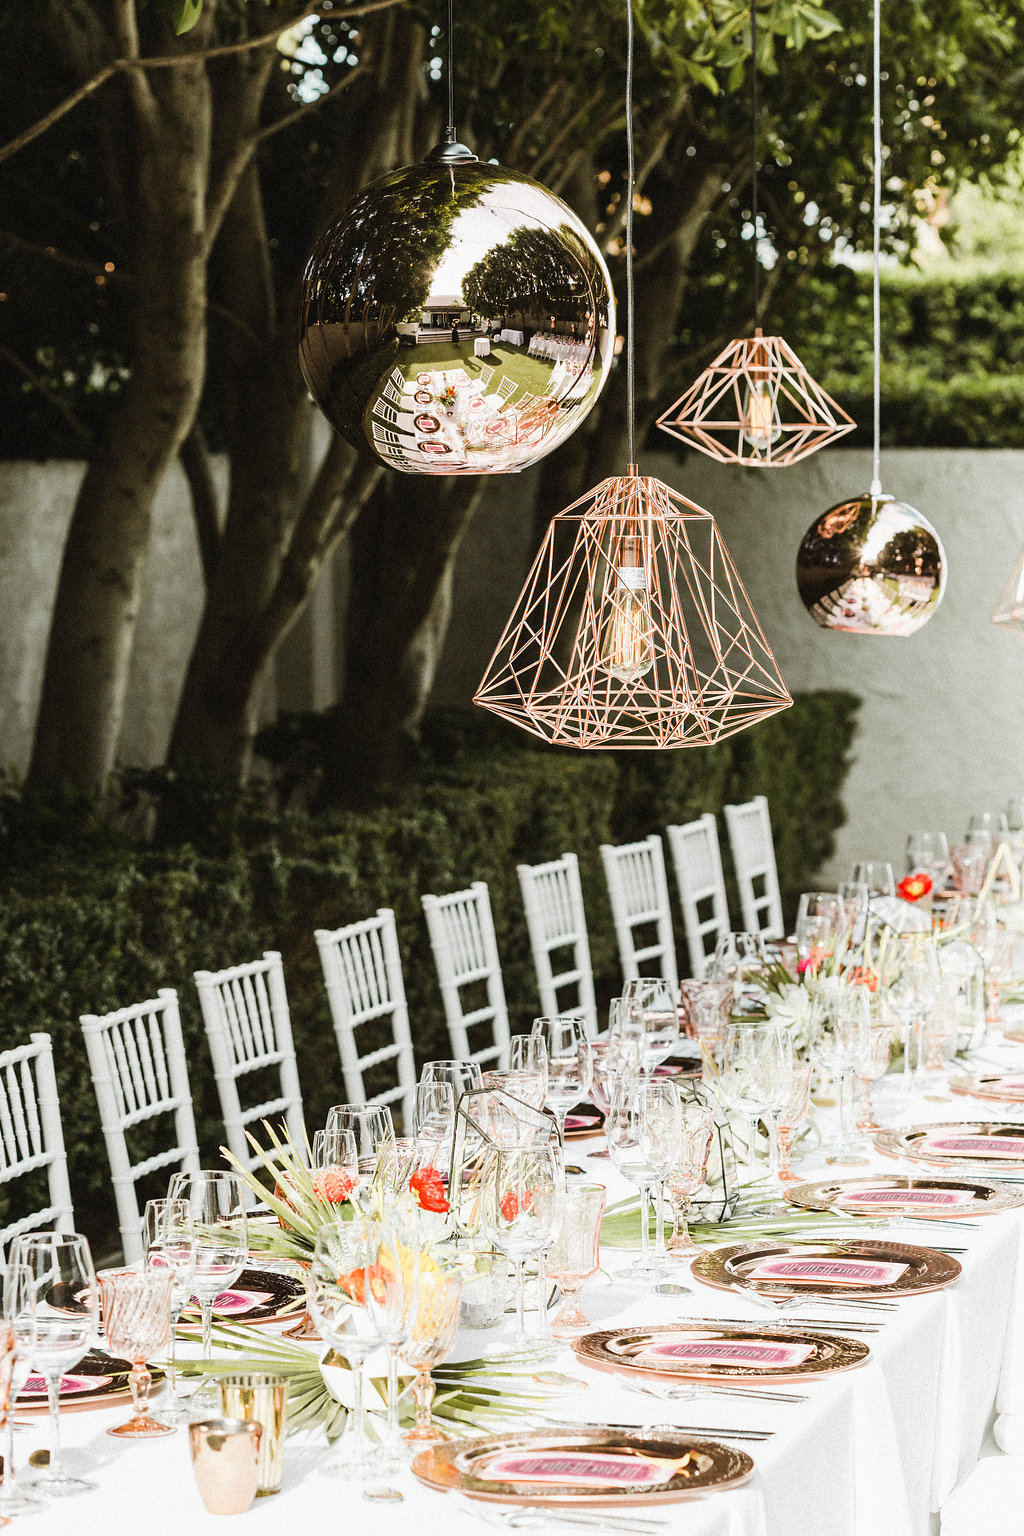 Avalon Palm Springs Wedding Reception with copper lanterns and copper table settings.